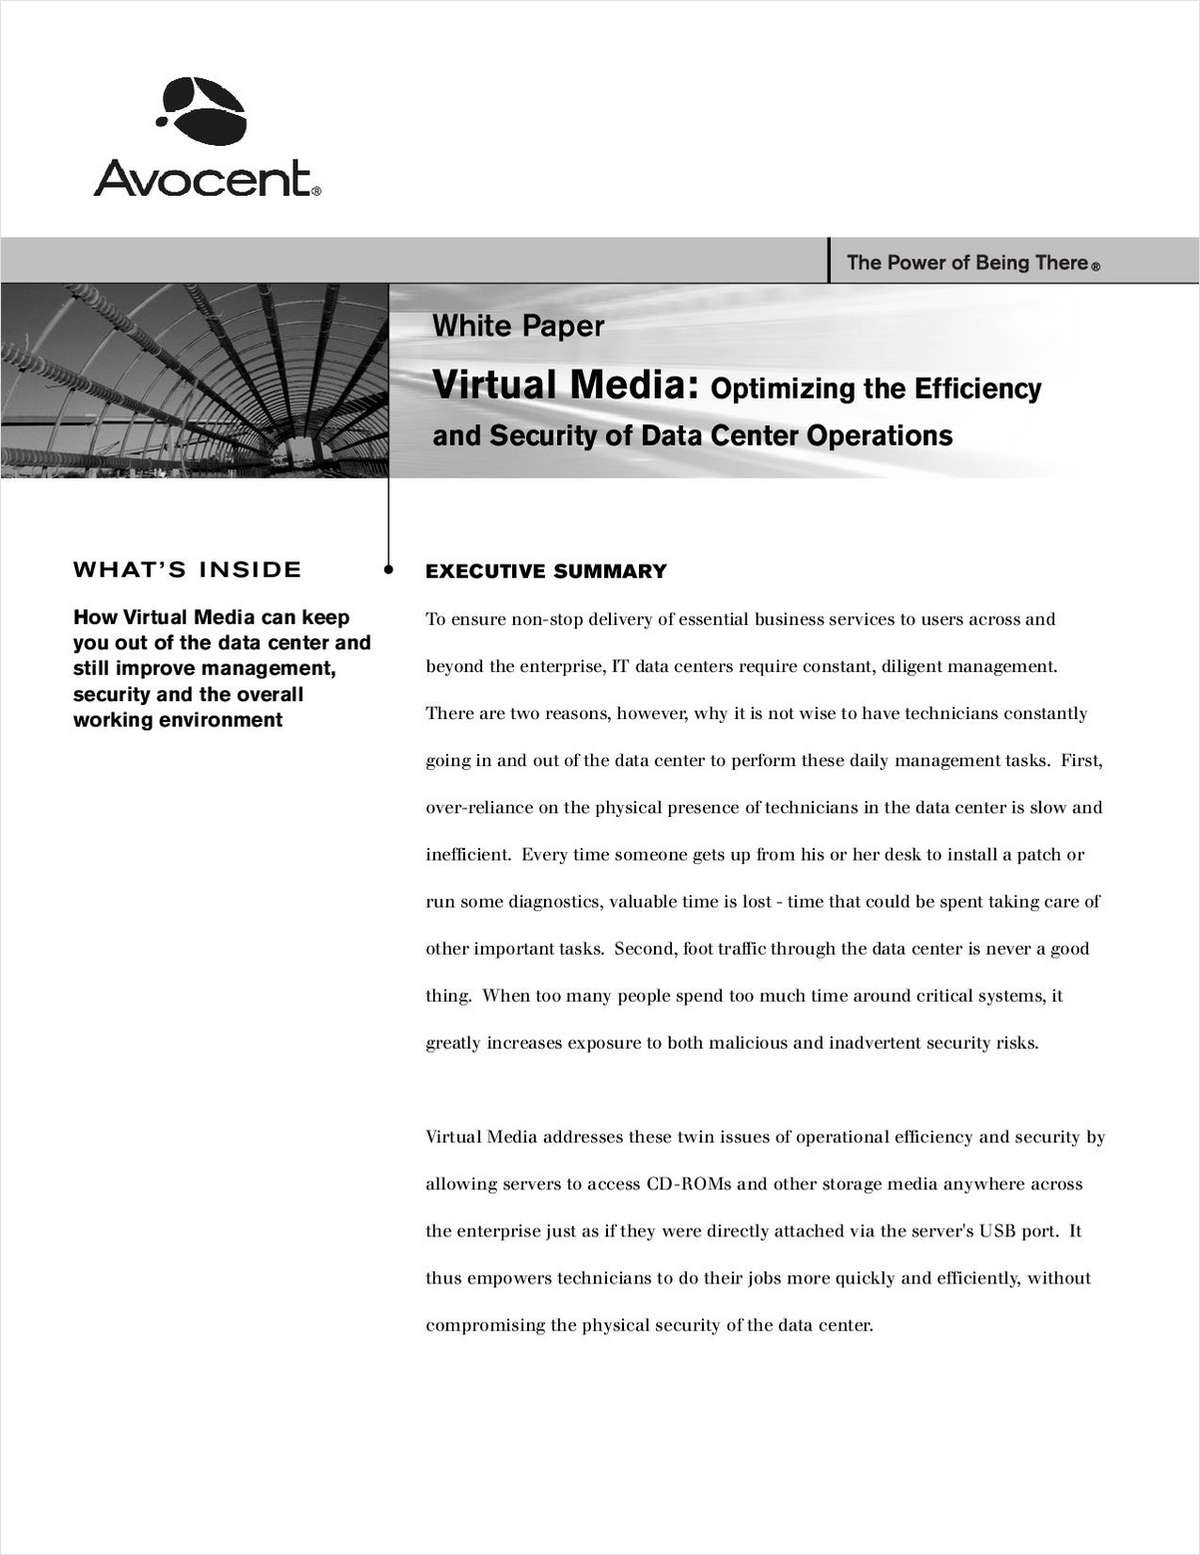 Virtual Media: Optimizing the Efficiency and Security of Data Center Operations